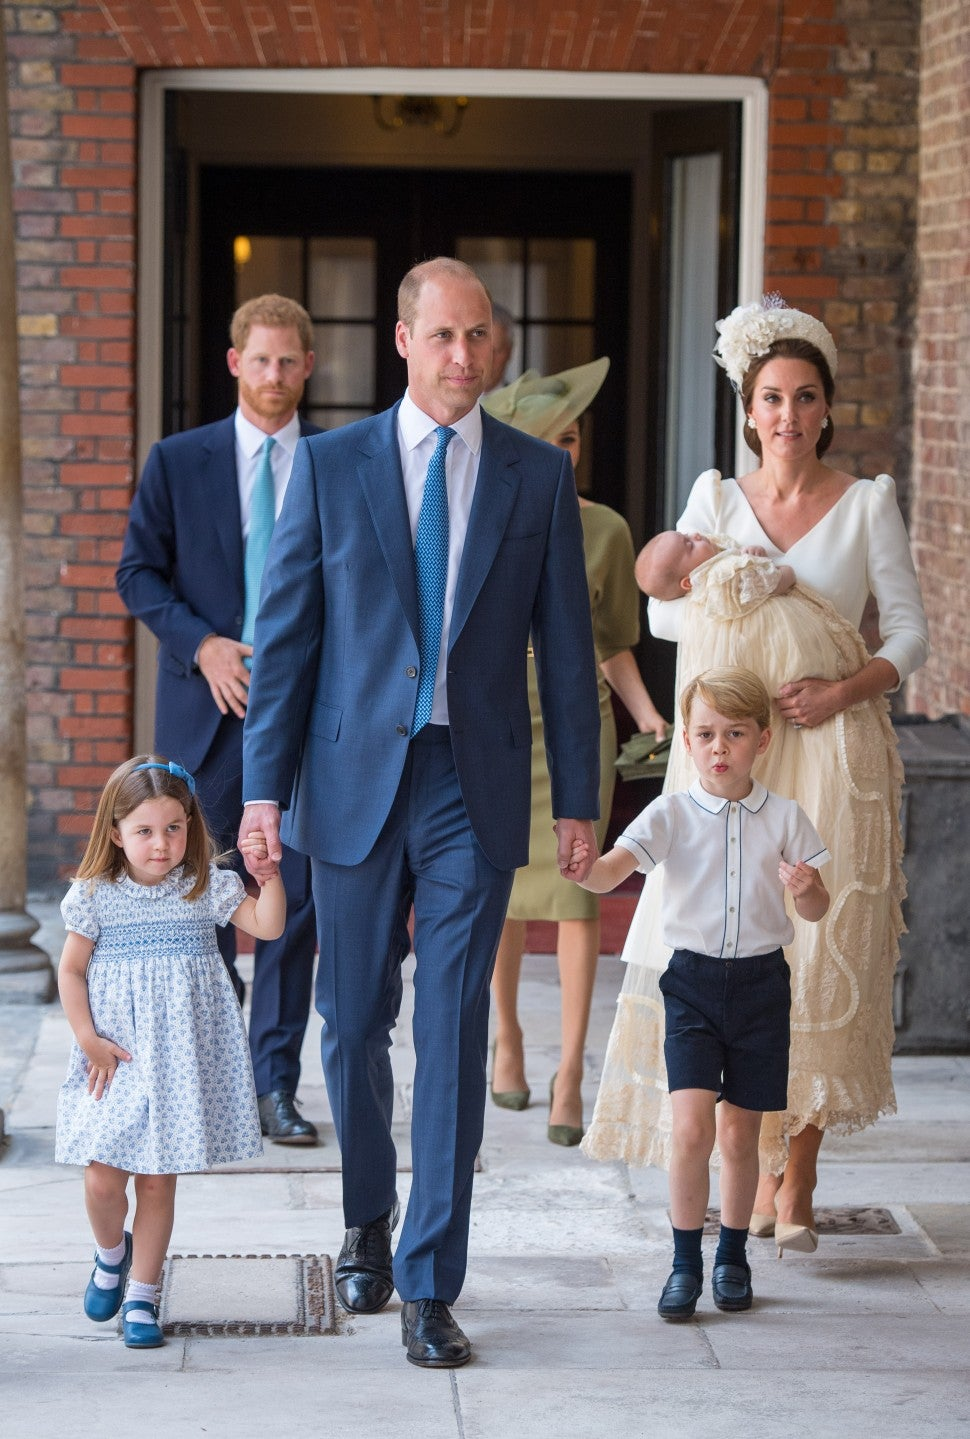 Princess Charlotte and Prince George hold the hands of their father, Prince William, Duke of Cambridge, as they arrive at the Chapel Royal, St James's Palace, London for the christening of their brother, Prince Louis, who is being carried by their mother, Catherine, Duchess of Cambridge